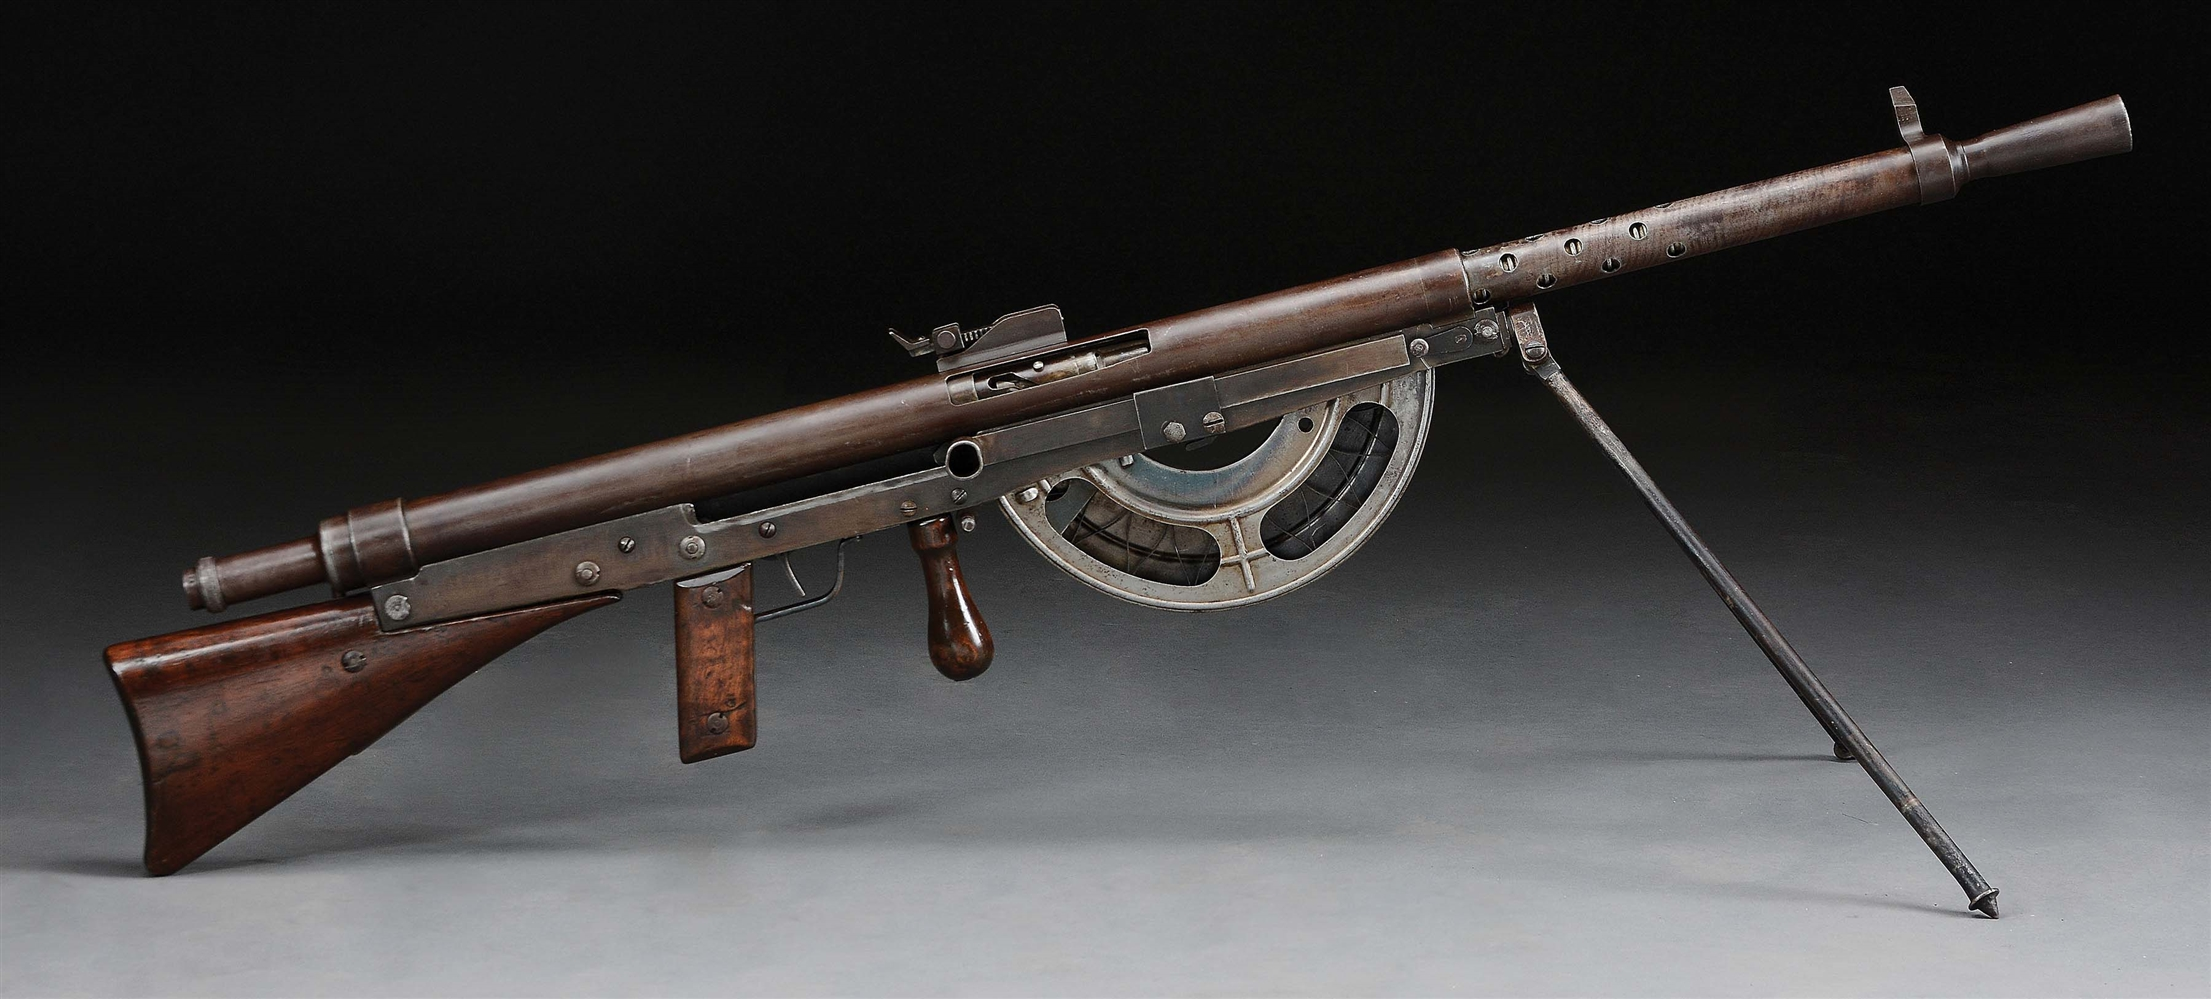 (N) FINE CONDITION SPECIMEN OF HISTORIC WW1 FRENCH CHAUCHAT MODEL 1915 MACHINE GUN (CURIO AND RELIC)